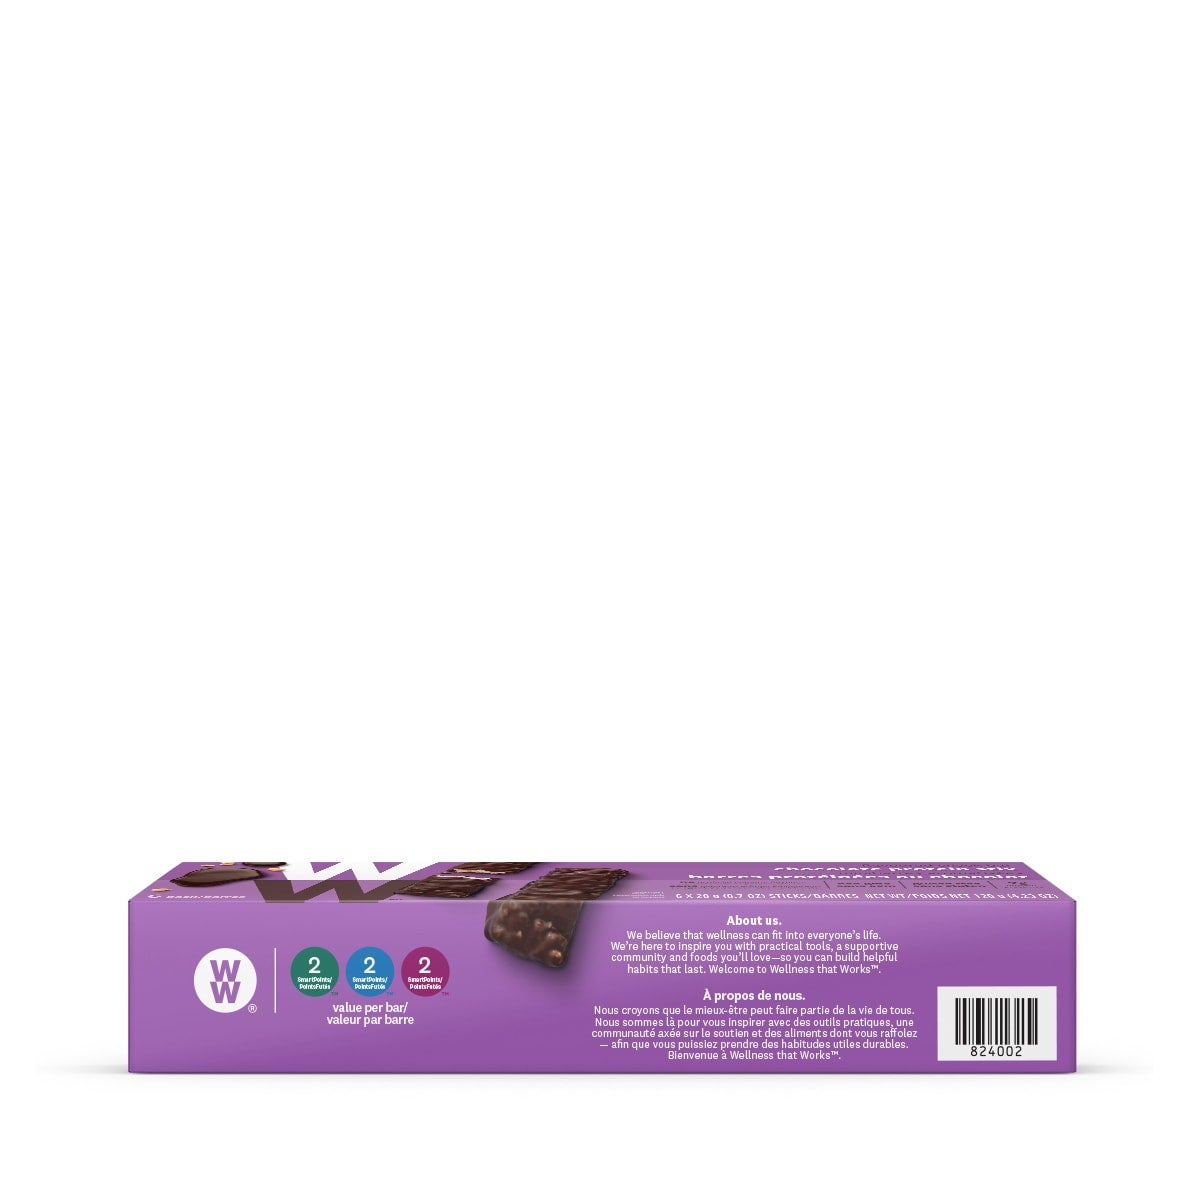 Chocolate Protein Stix - side 2 of the box